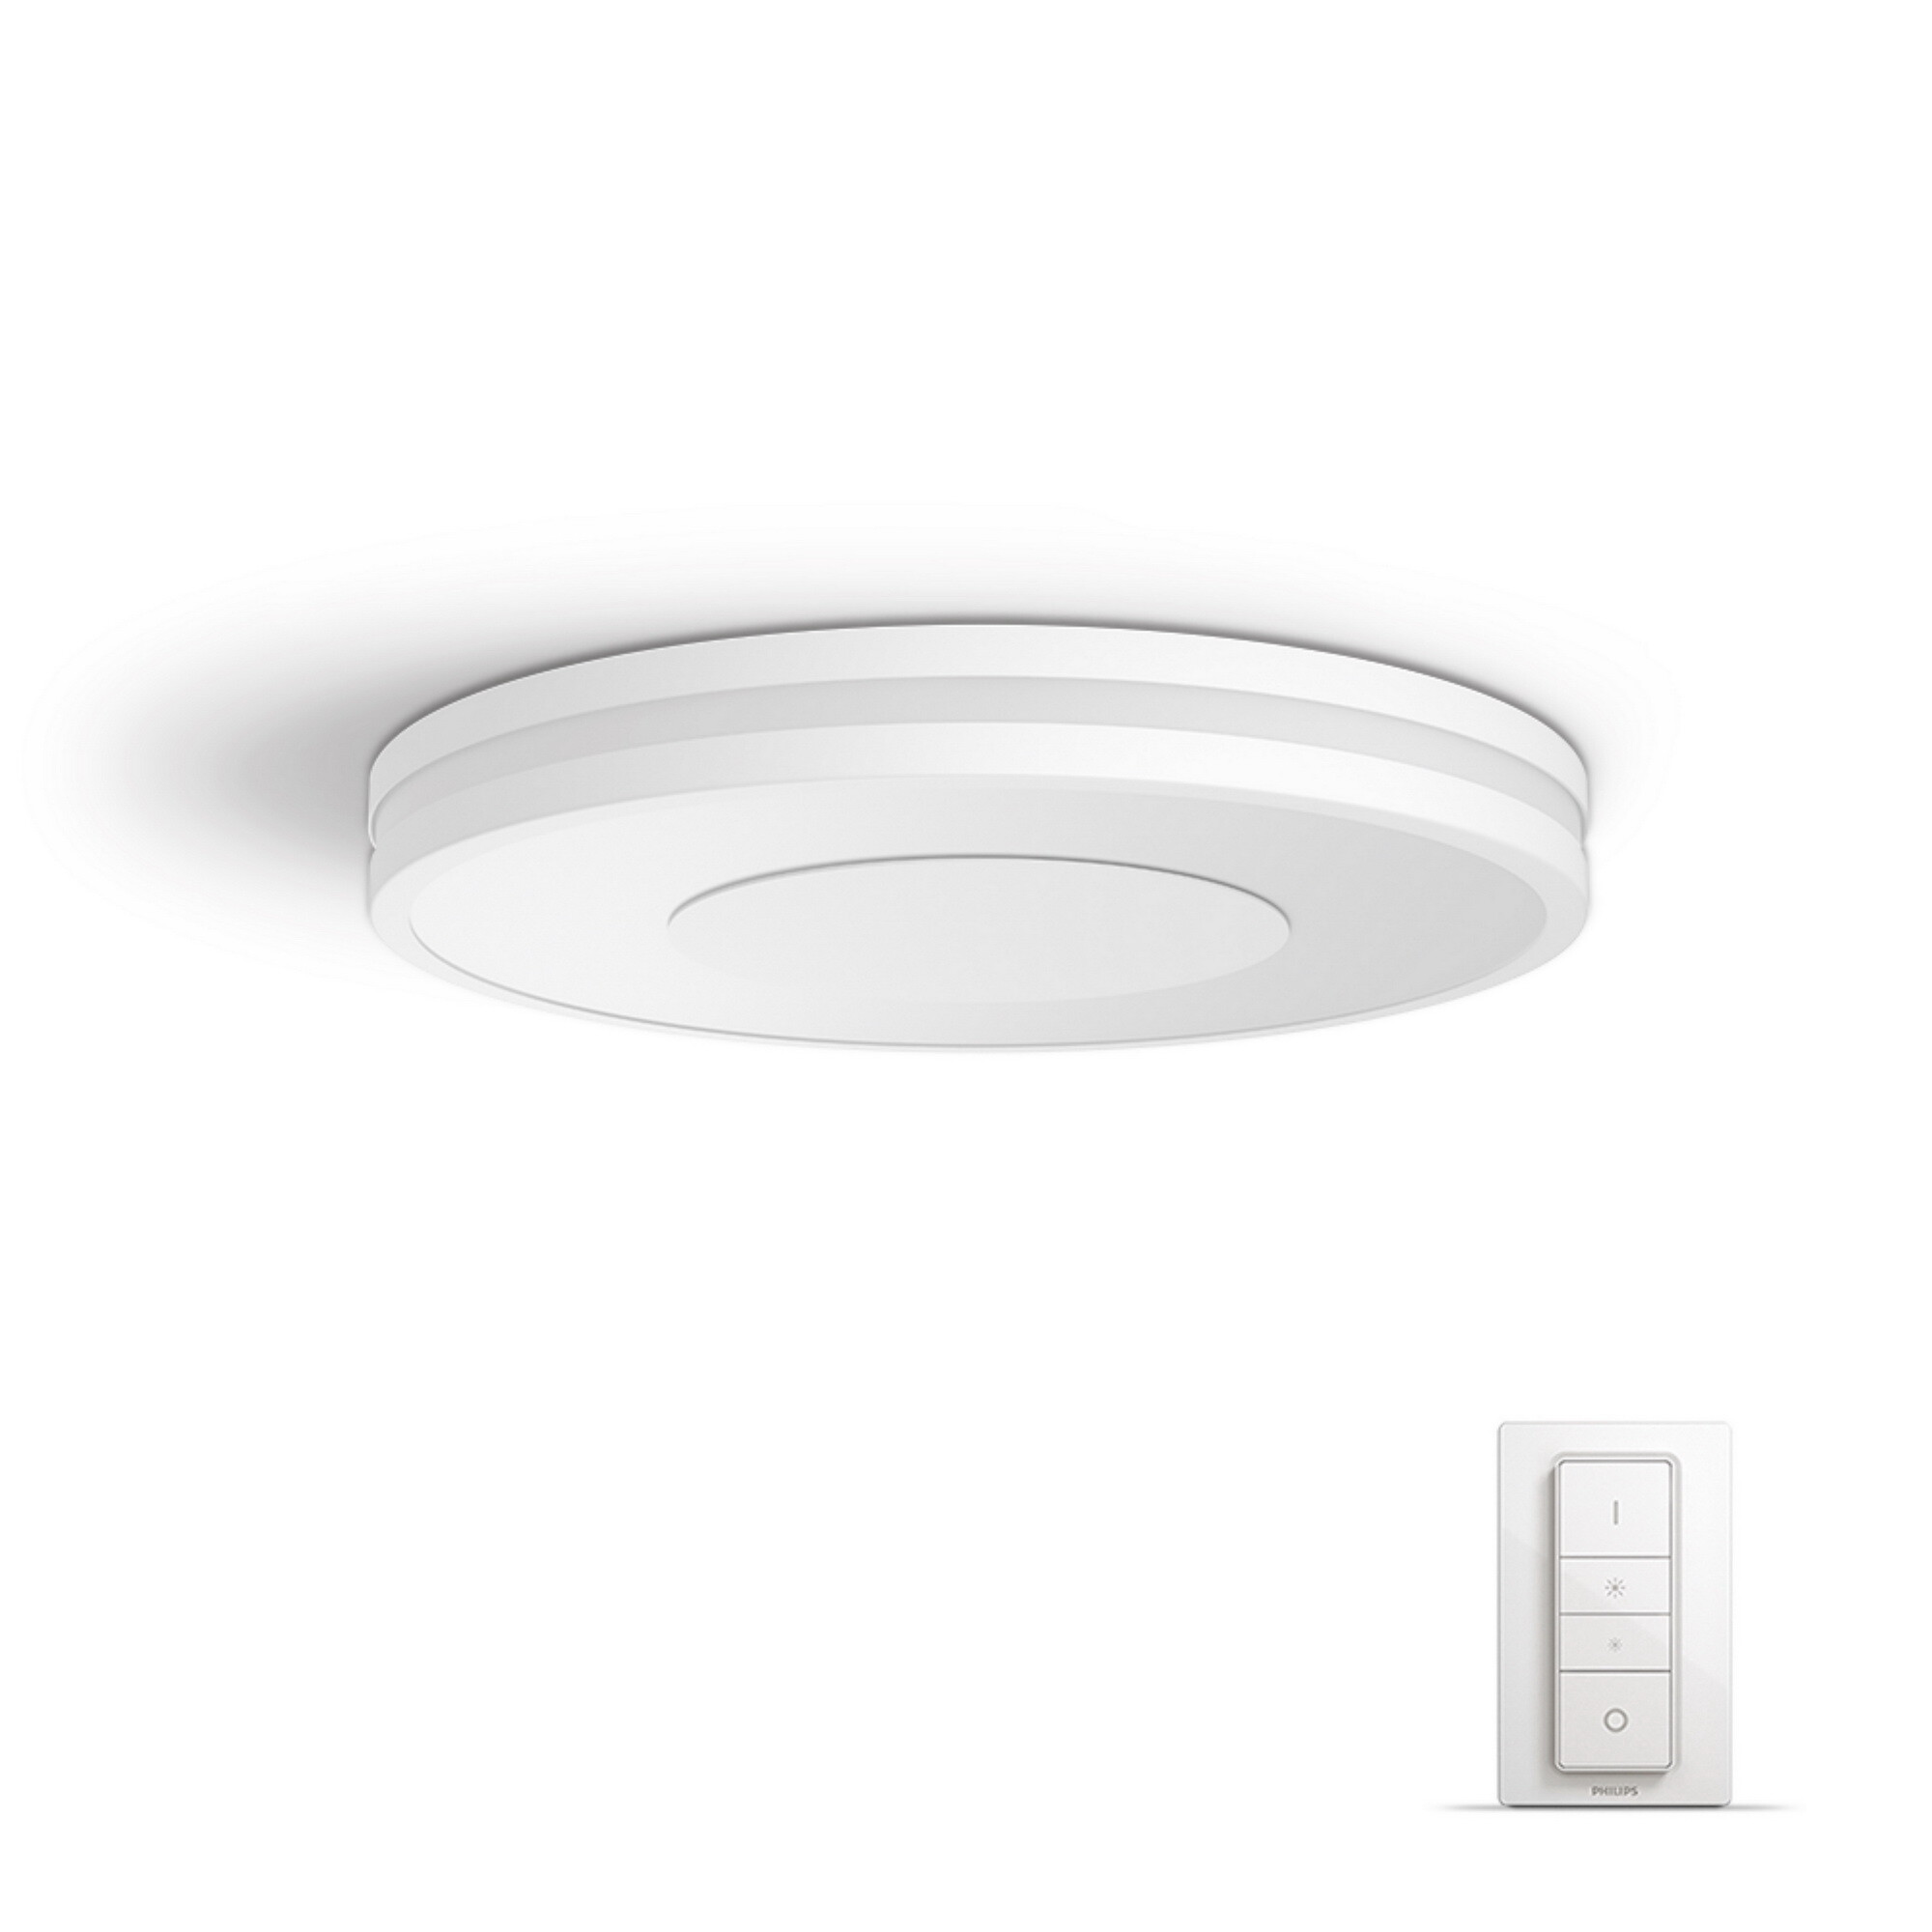 Philips HUE BEING Suspensions LED 1x32W/2400lm Blanc